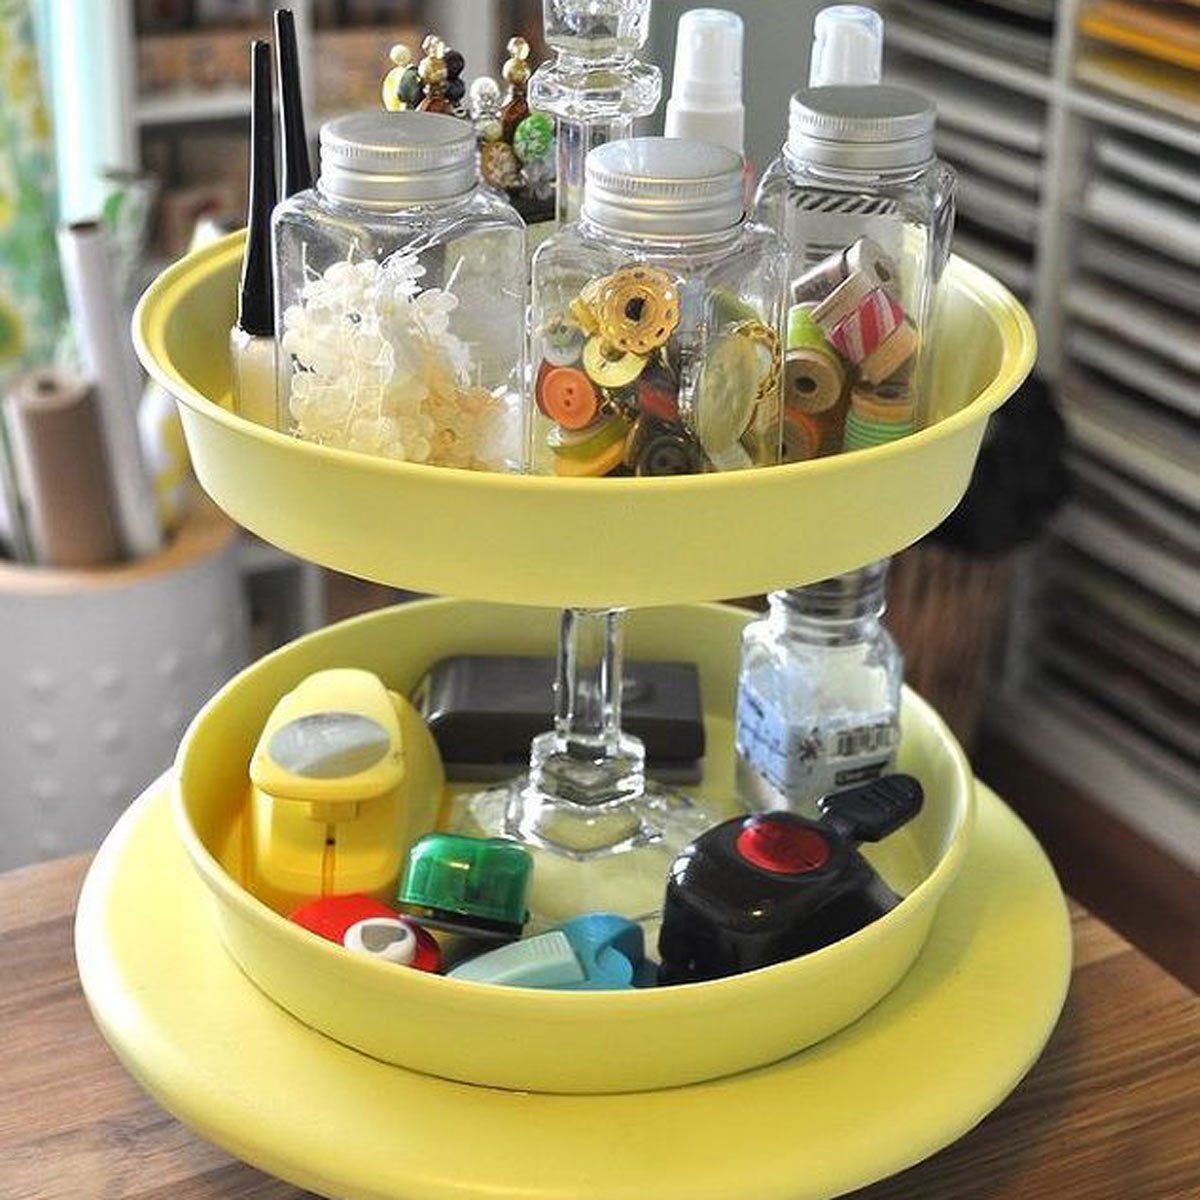 How to be Organized for School: Use a Tiered Cake Stand for School Supplies